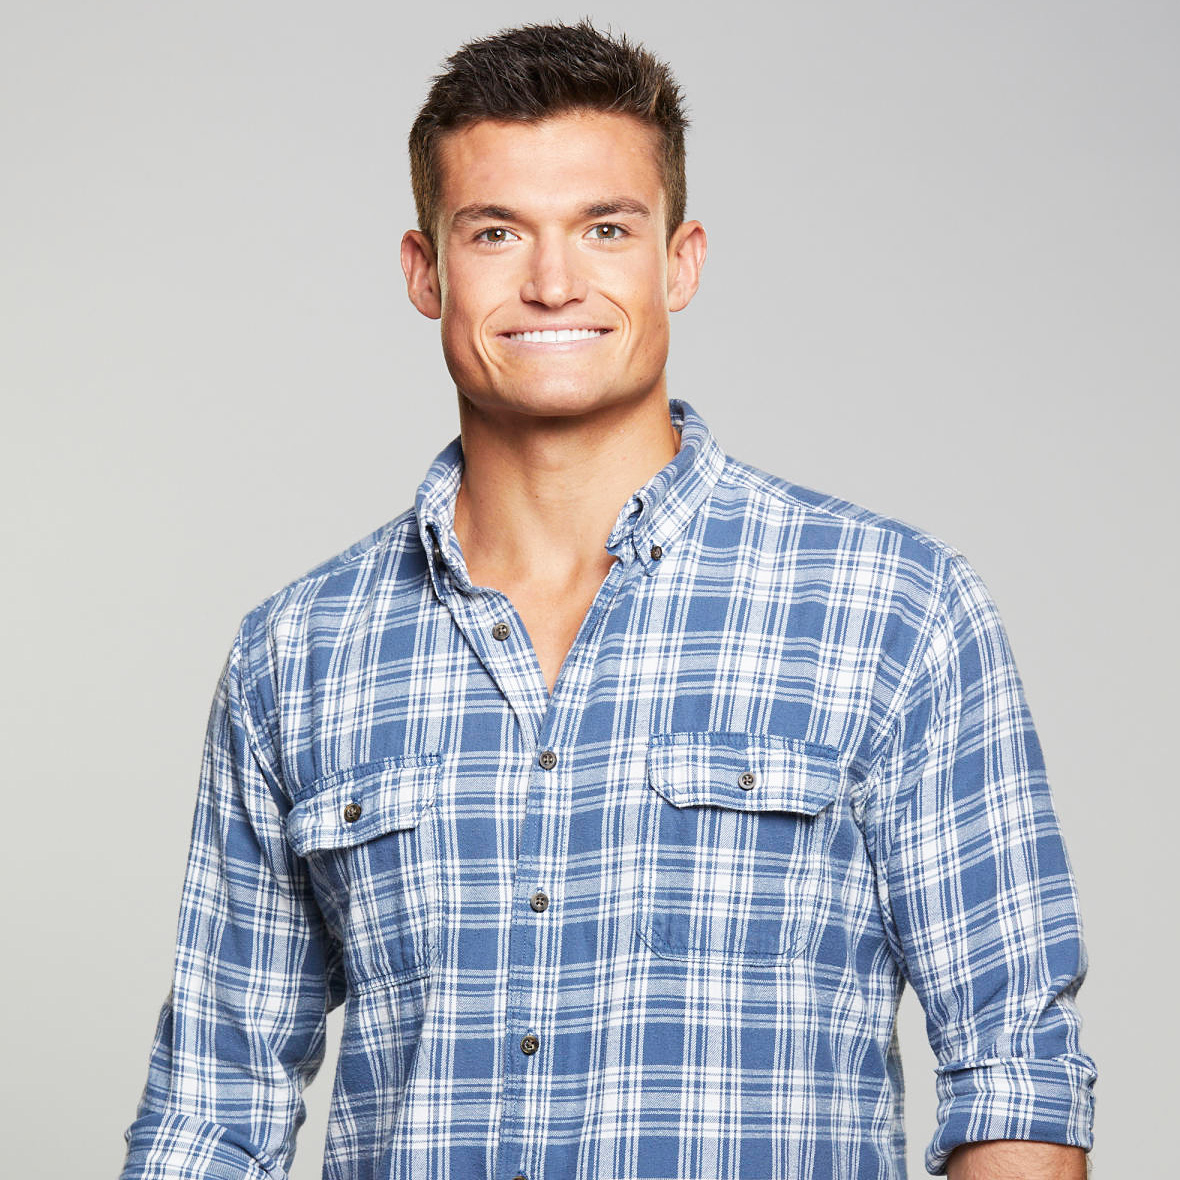 Big Brother's Michie Sets the Record Straight: 'I Don't See Race or Gender'